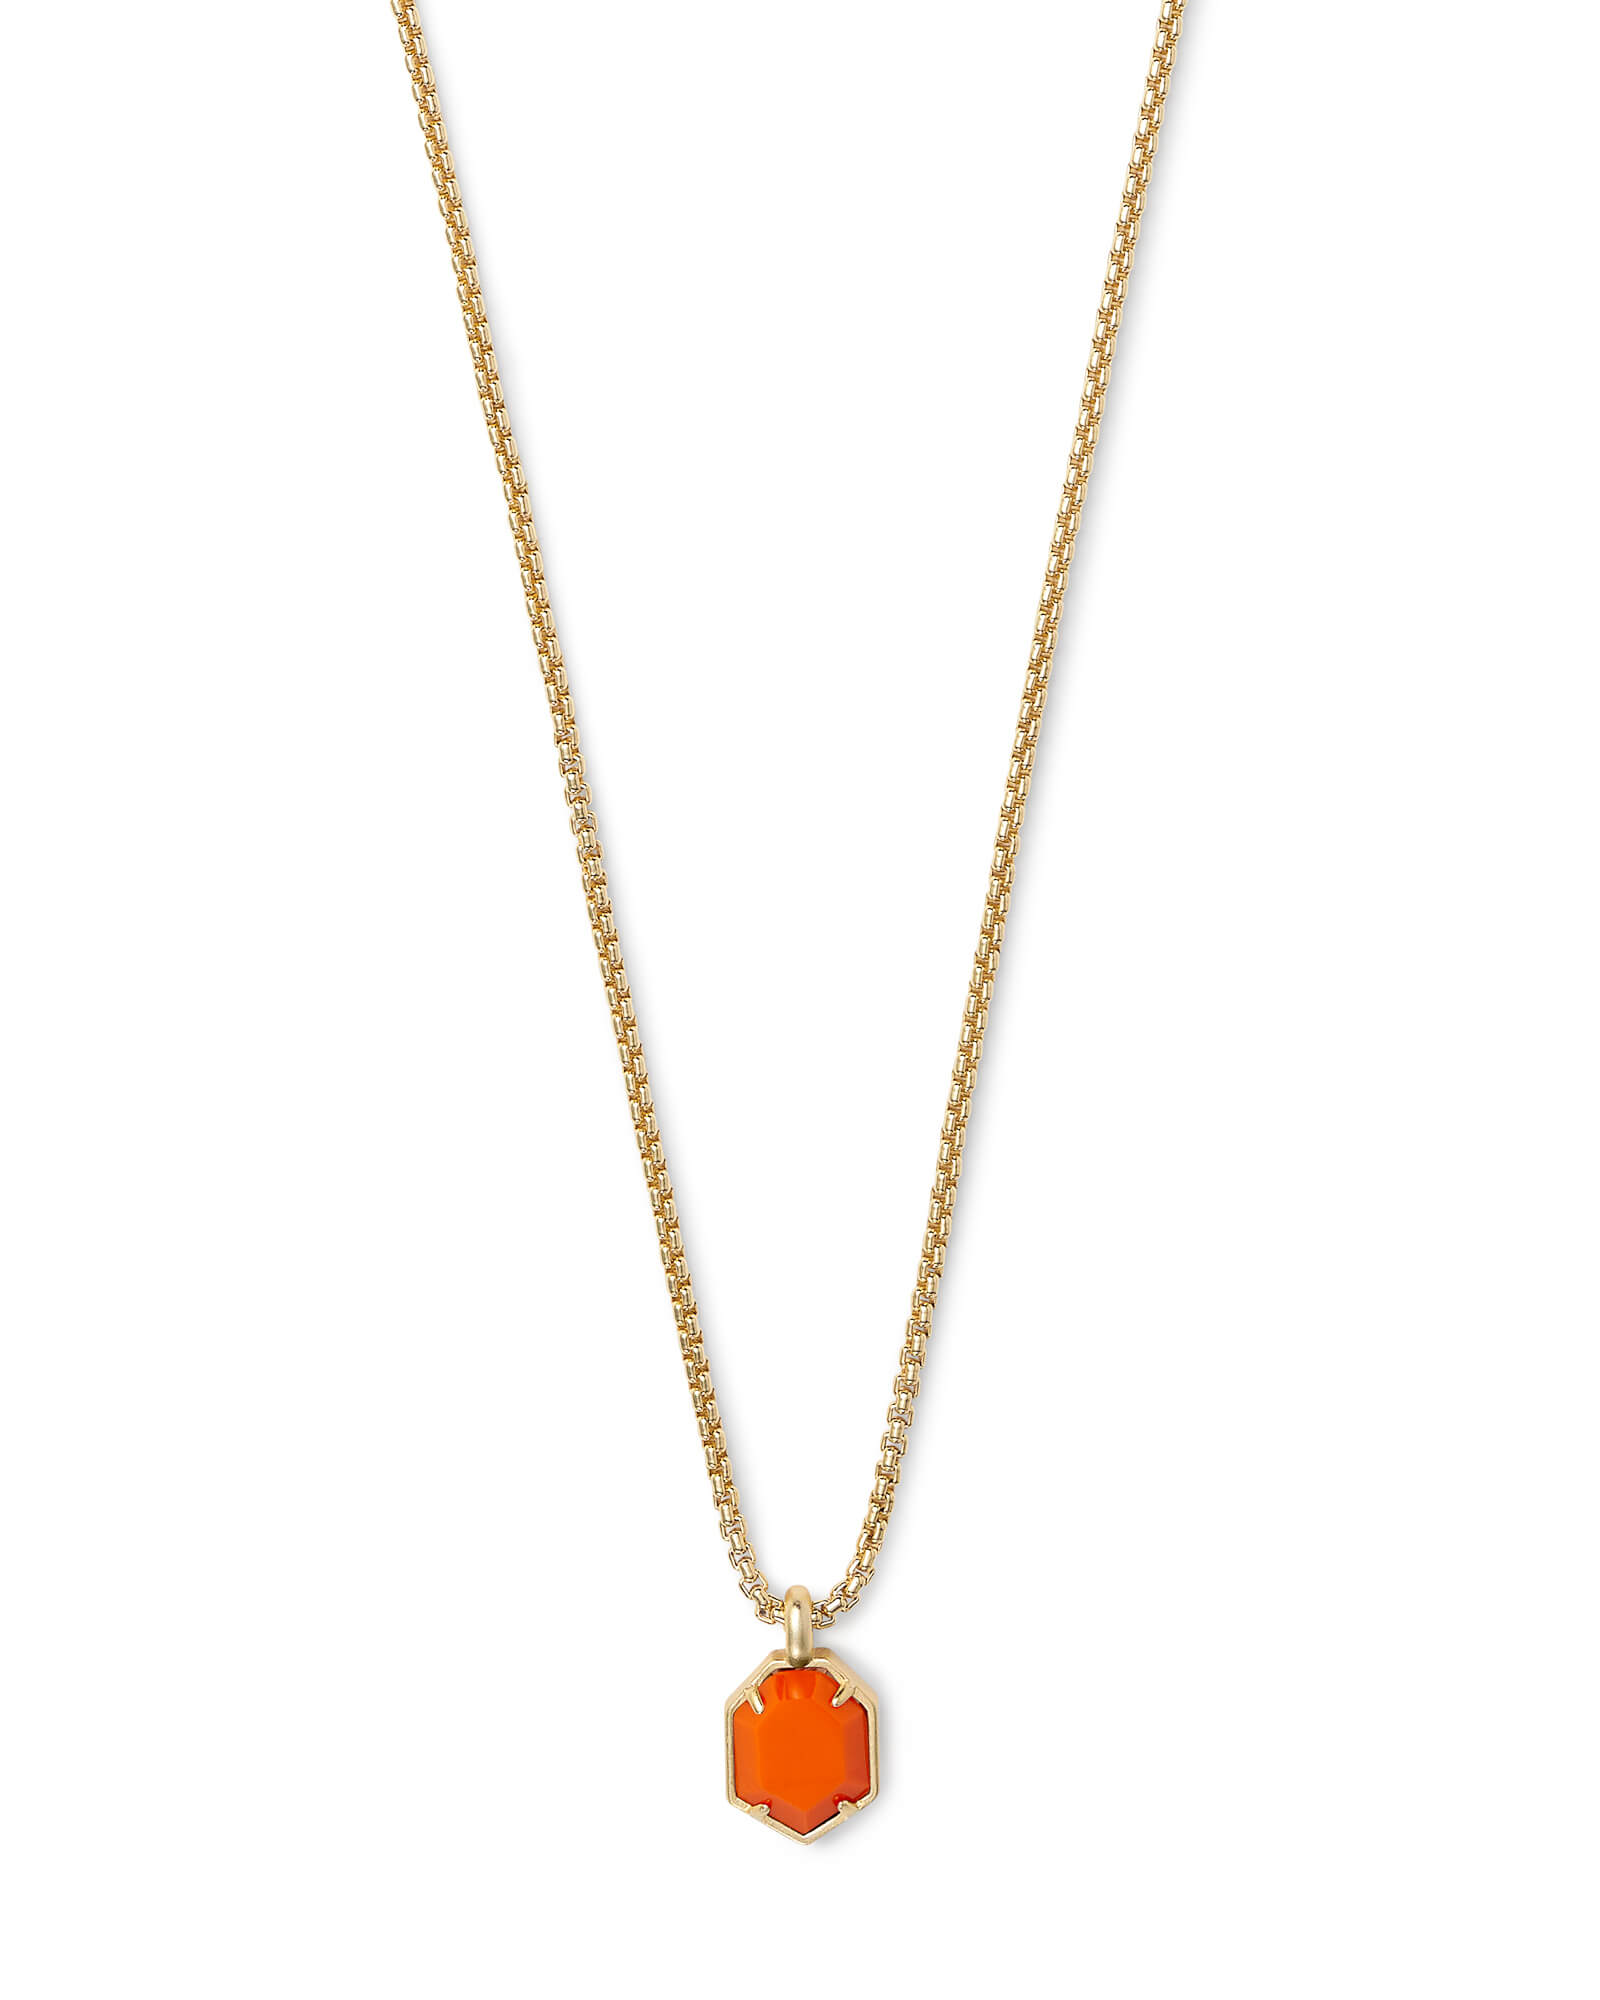 Teo Gold Pendant Necklace In Orange